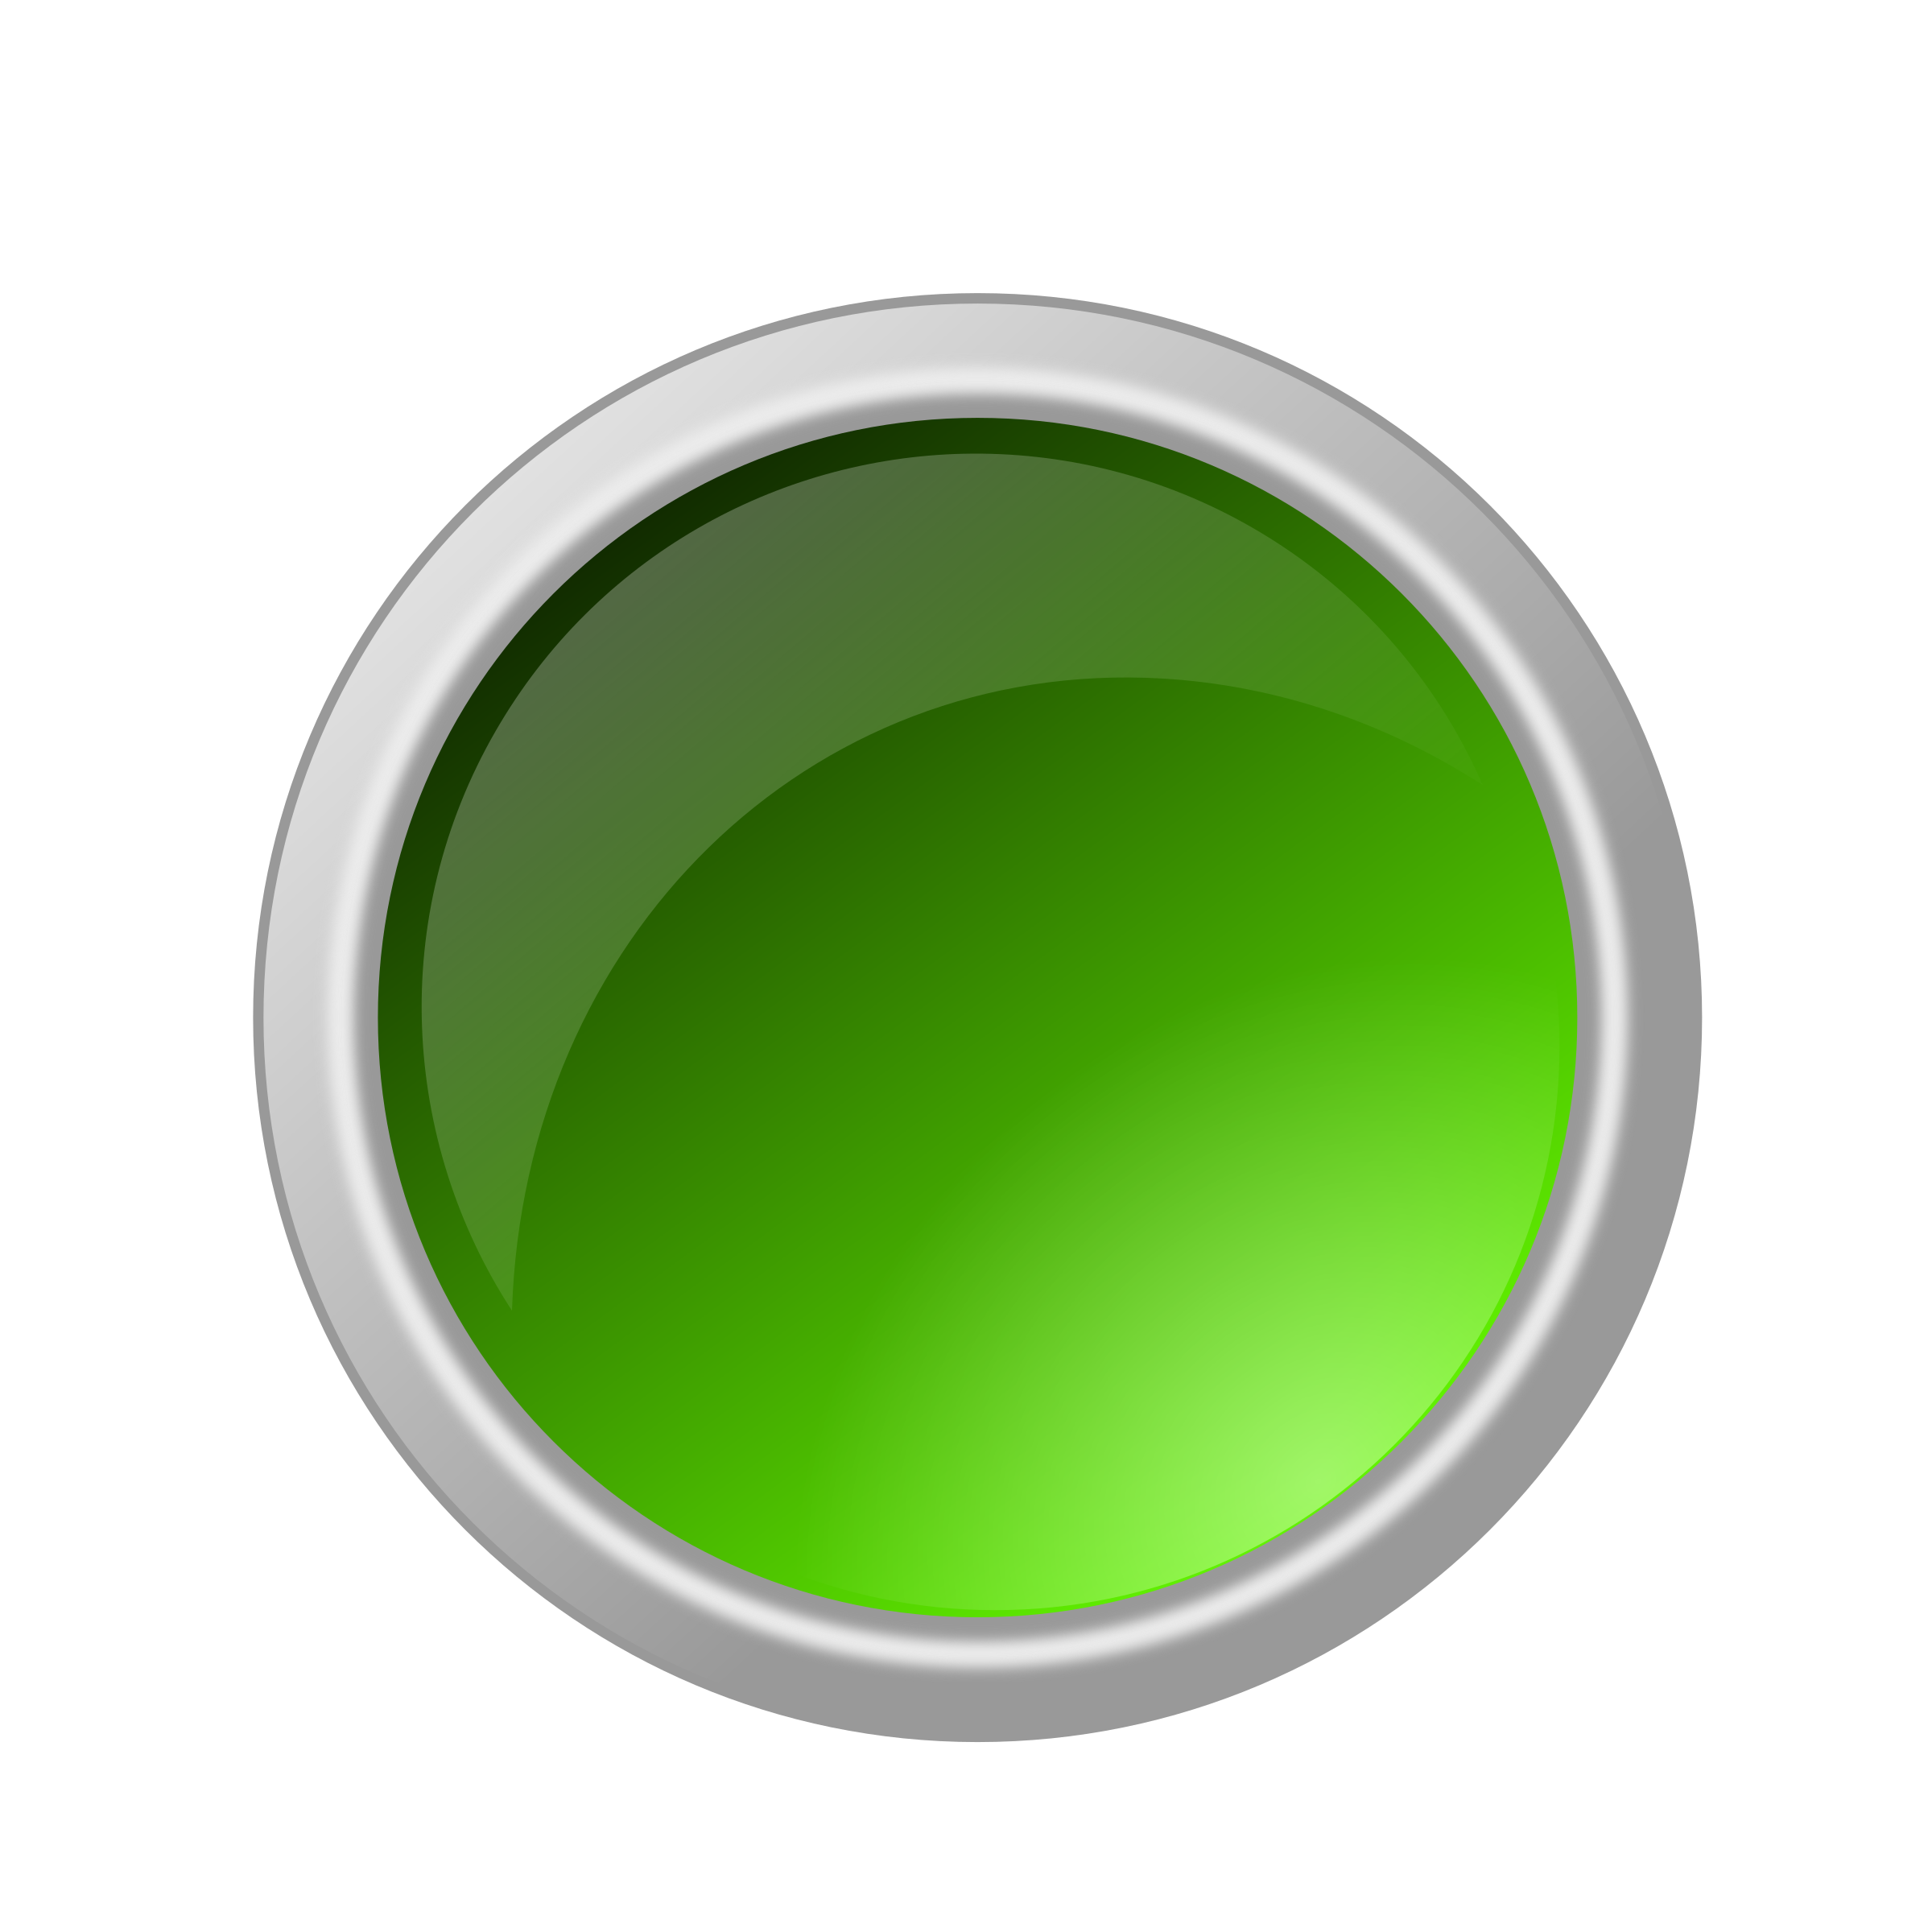 glossy green button by ricardomaia